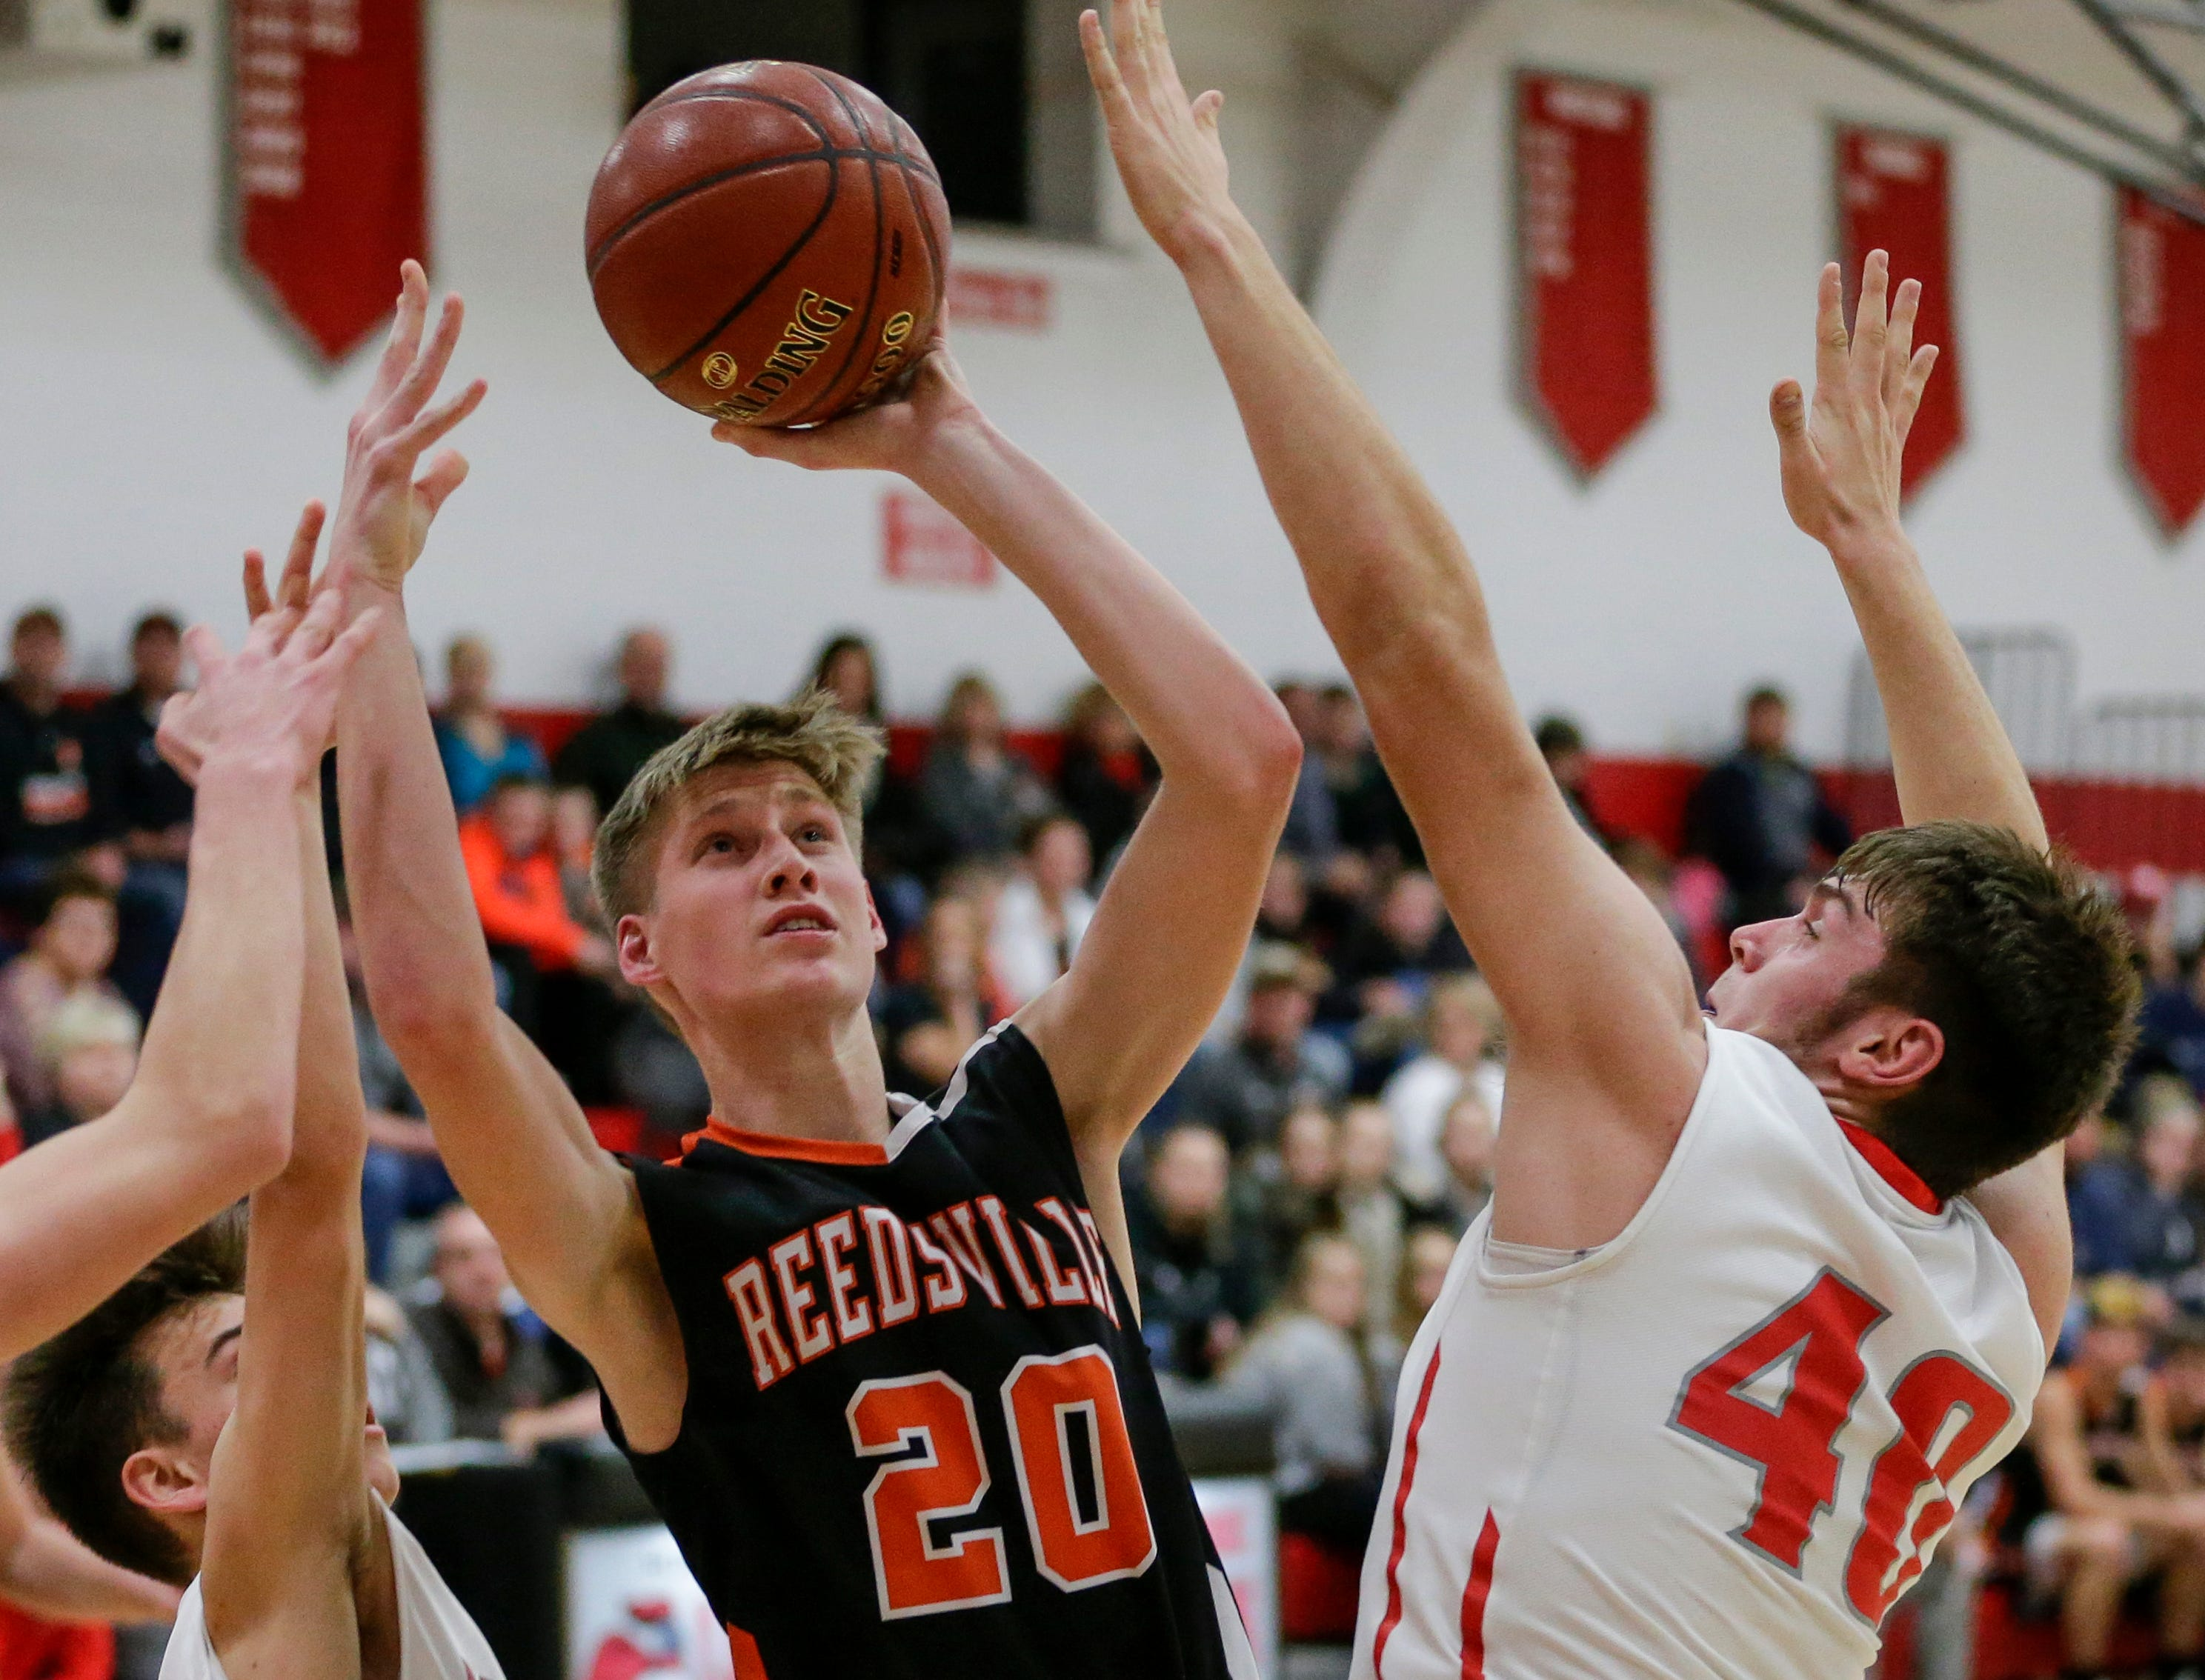 Reedsville's Cade Hafkey shoots against Manitowoc Lutheran at Manitowoc Lutheran High School Thursday, December 20, 2018, in Manitowoc, Wis. Joshua Clark/USA TODAY NETWORK-Wisconsin